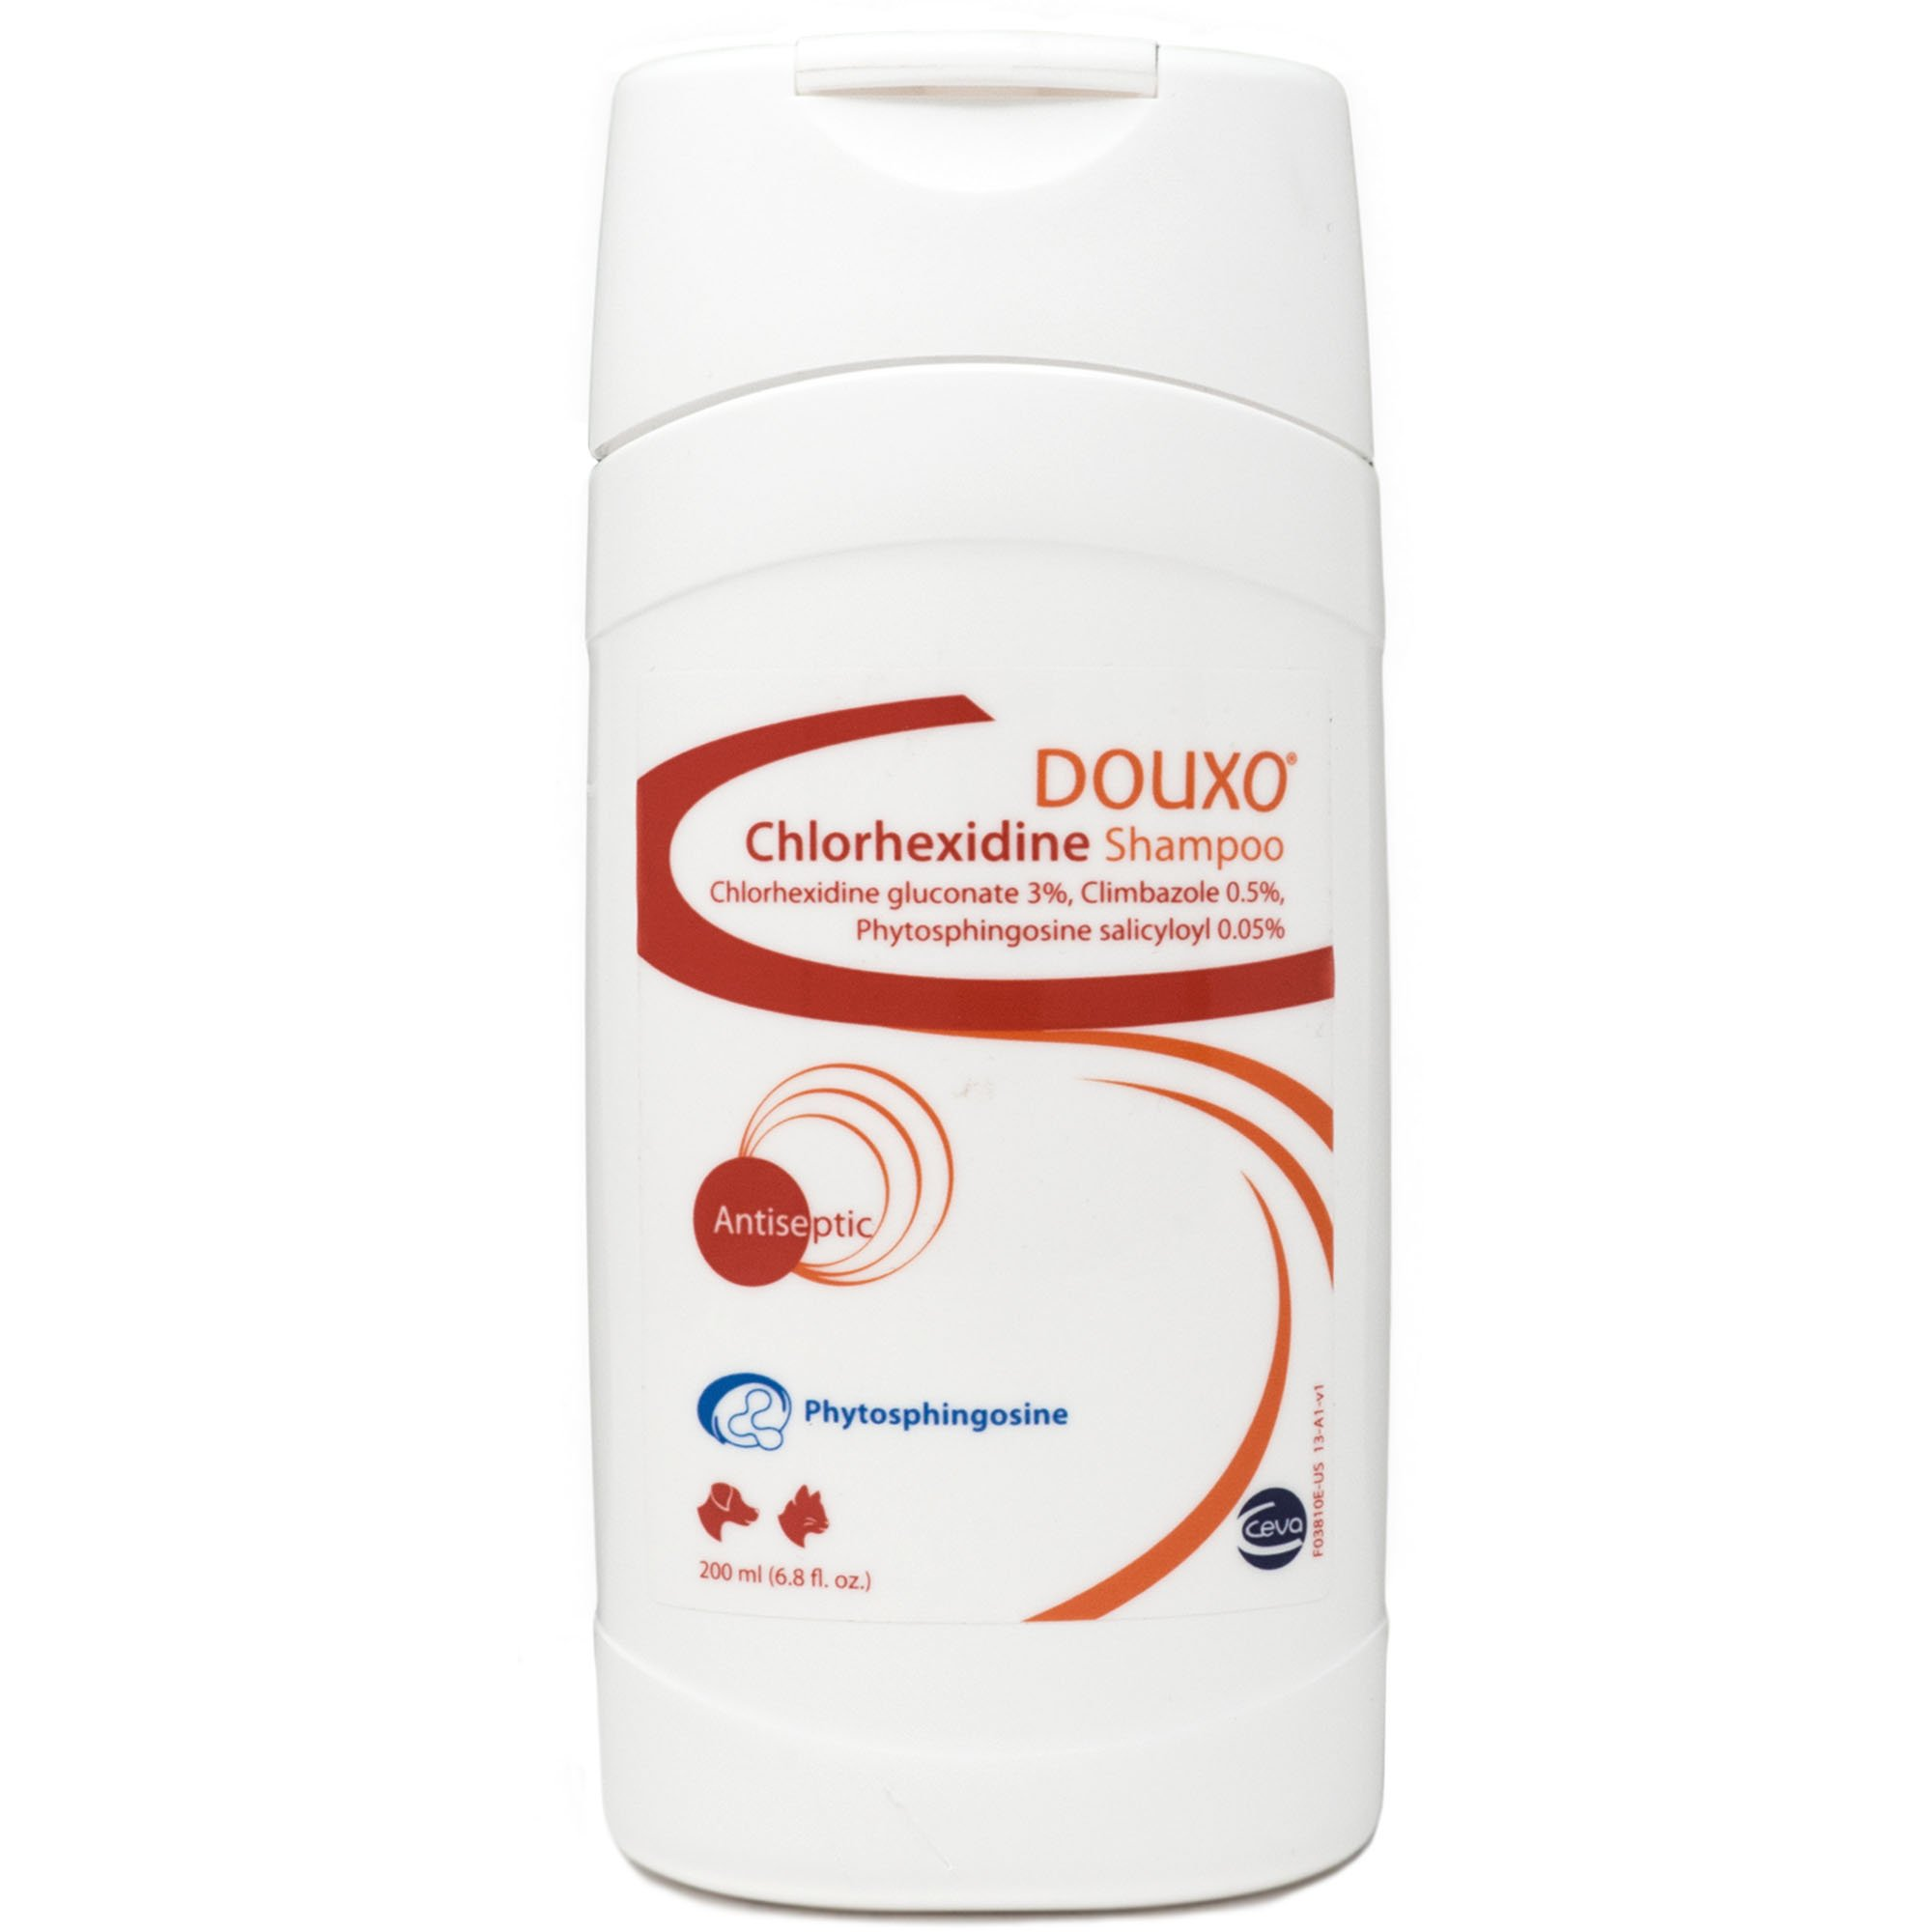 Douxo (Sogeval) Chlorhexidine Shampoo for Dogs & Cats (200 ml) - Topical Solution for Skin Infections by Sogeval Douxo